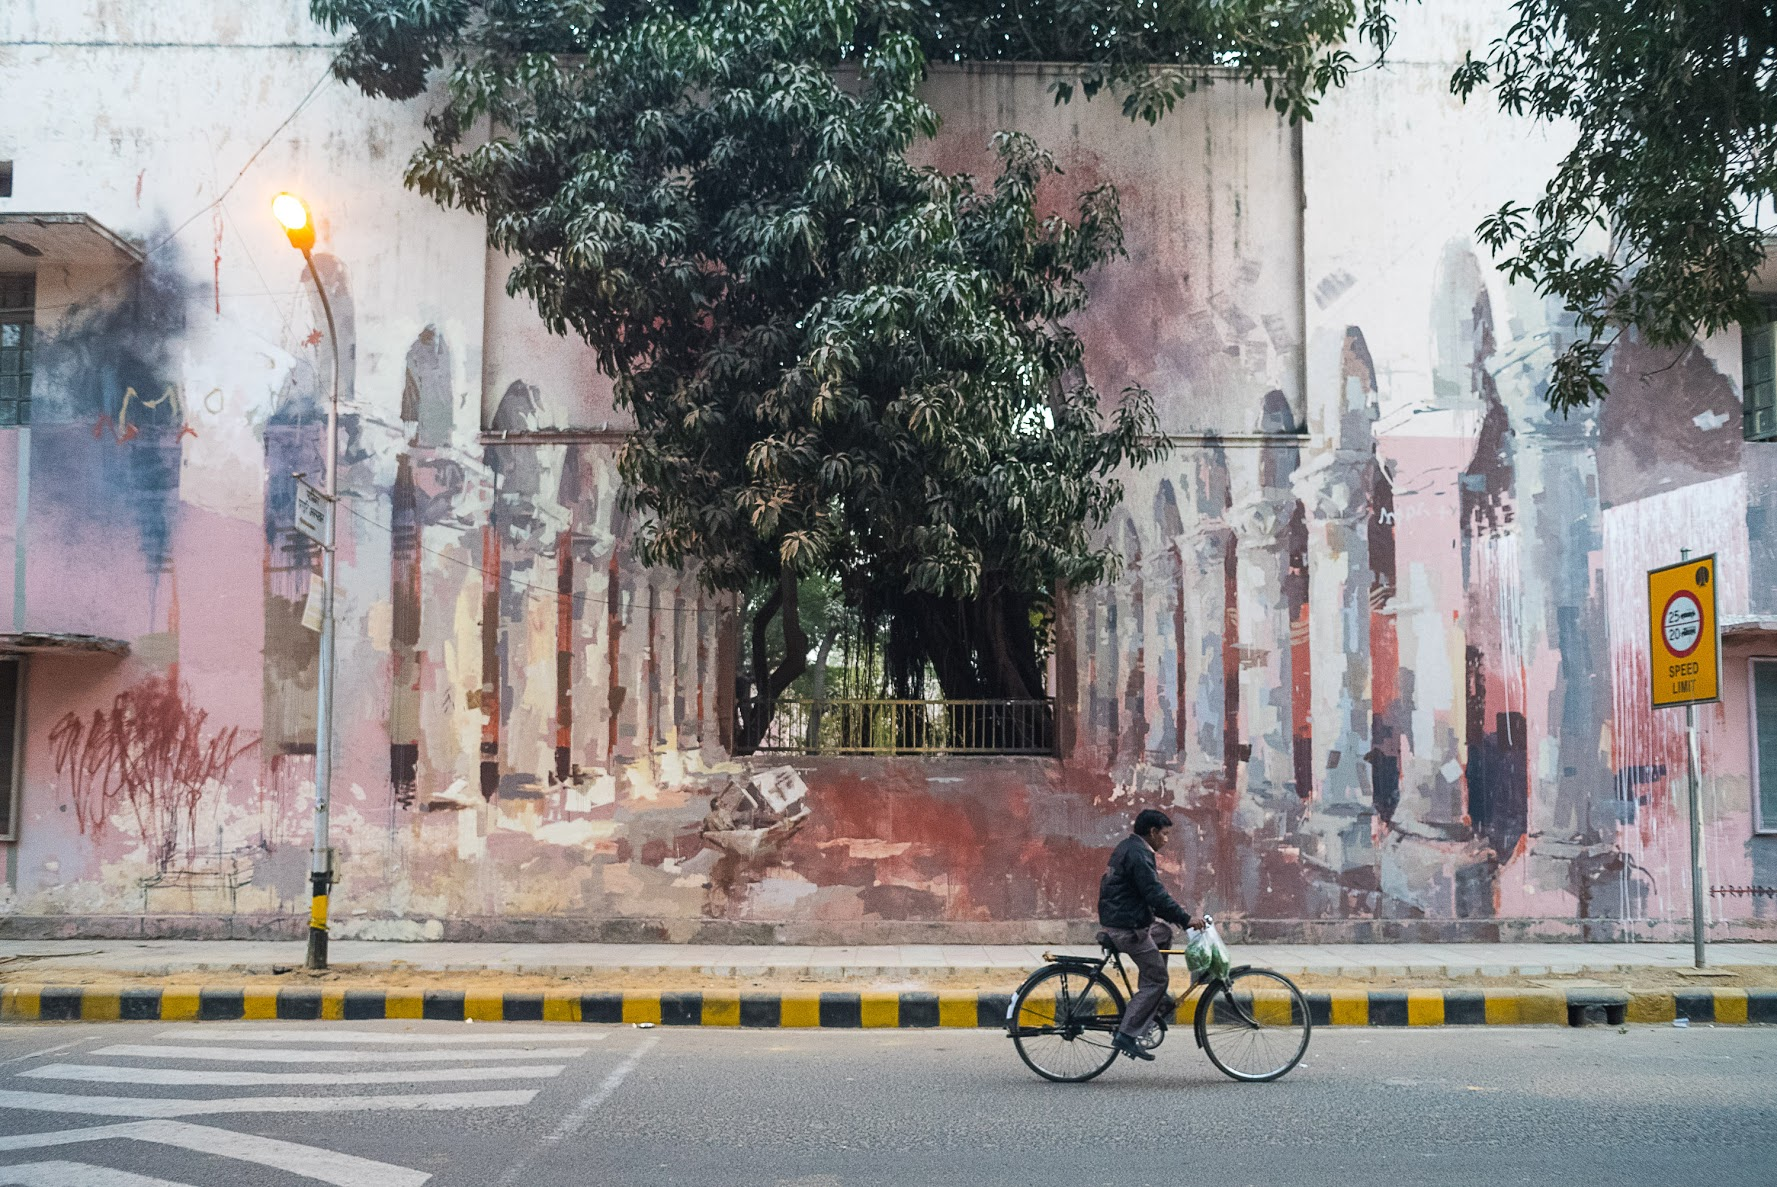 'The Origin Of The World' by Spanish artist Borondo, Block 11, Lodhi Colony.  (Photograph: Naman Saraiya).